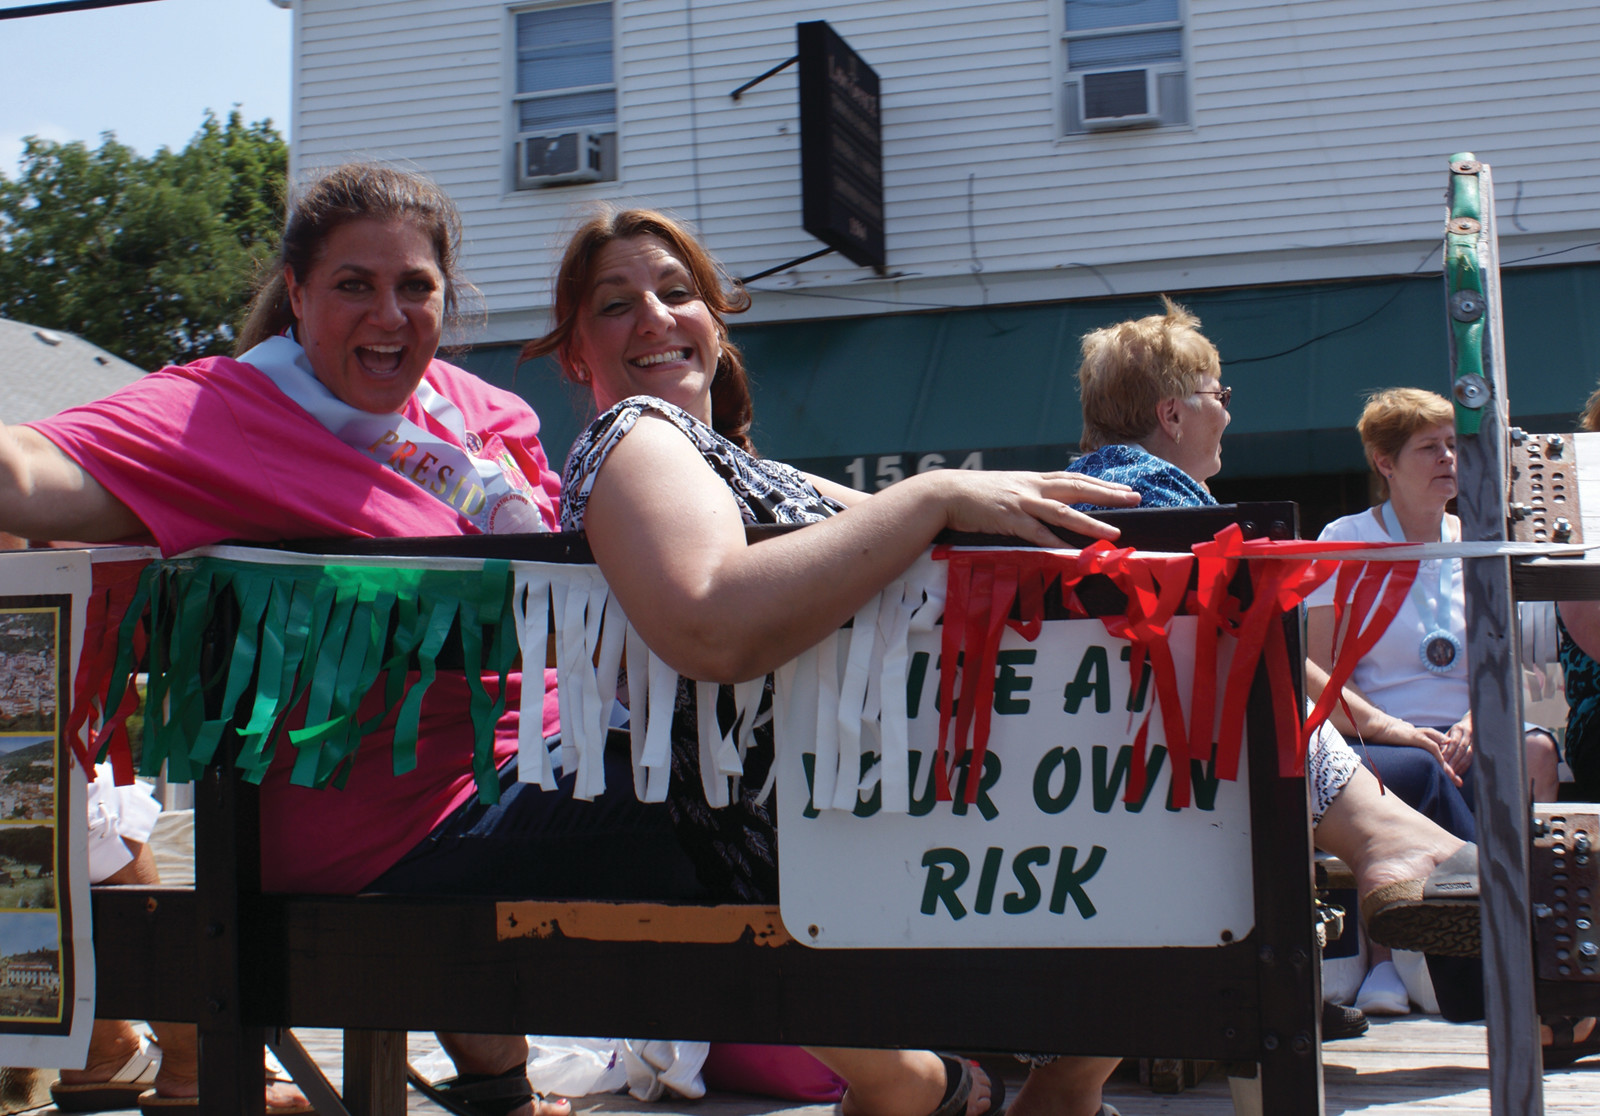 HAVING A BLAST: Maria Manzi, president of the St. Mary's Feast Society Ladies Auxiliary, rode along with friend and Ward 2 School Committee Representative Stephanie Culhane during the parade.